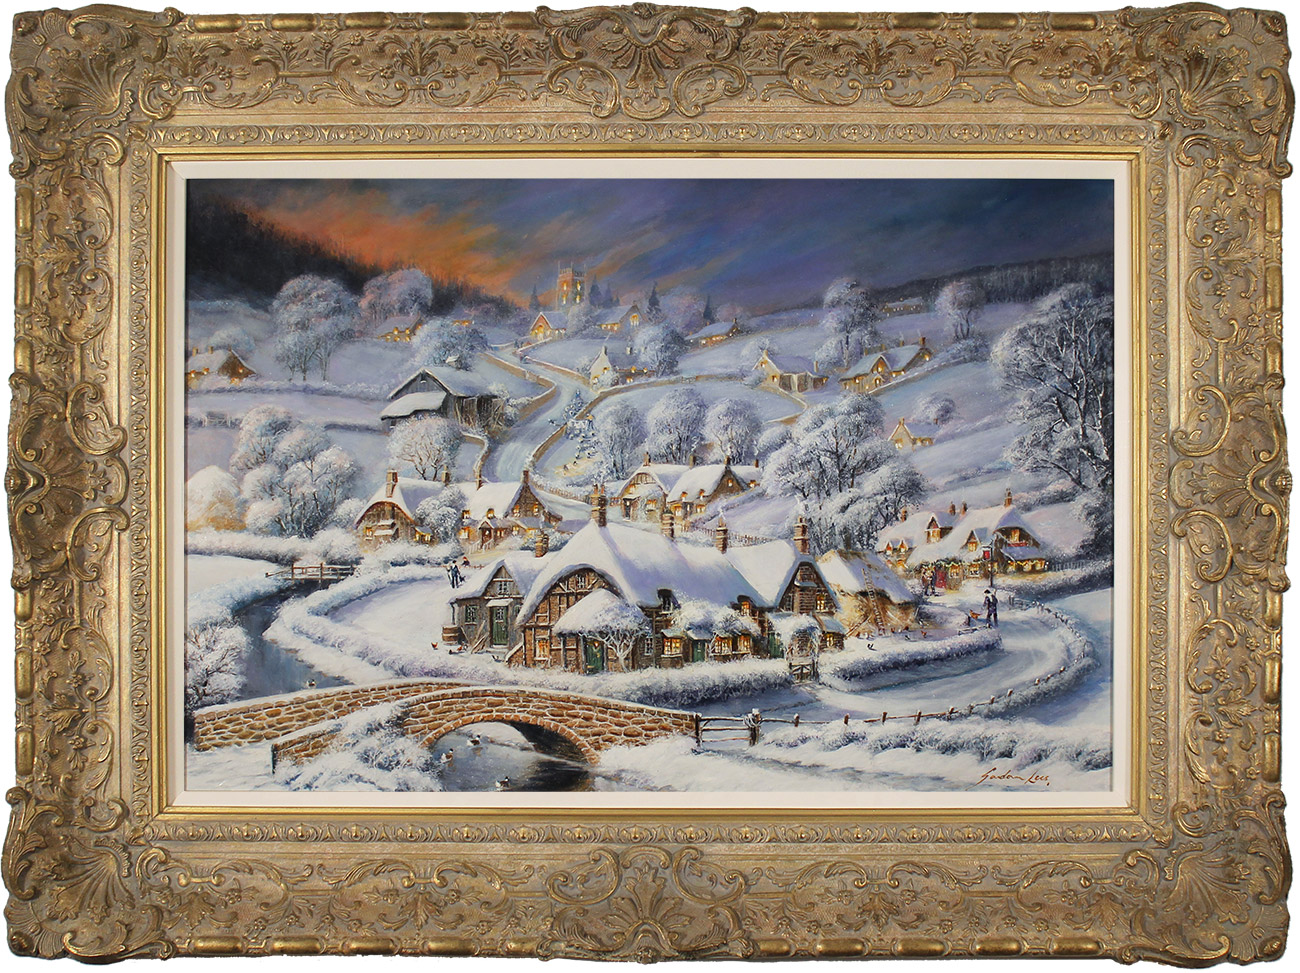 Gordon Lees, Original oil painting on panel, The Close of a Winter's Eve, click to enlarge